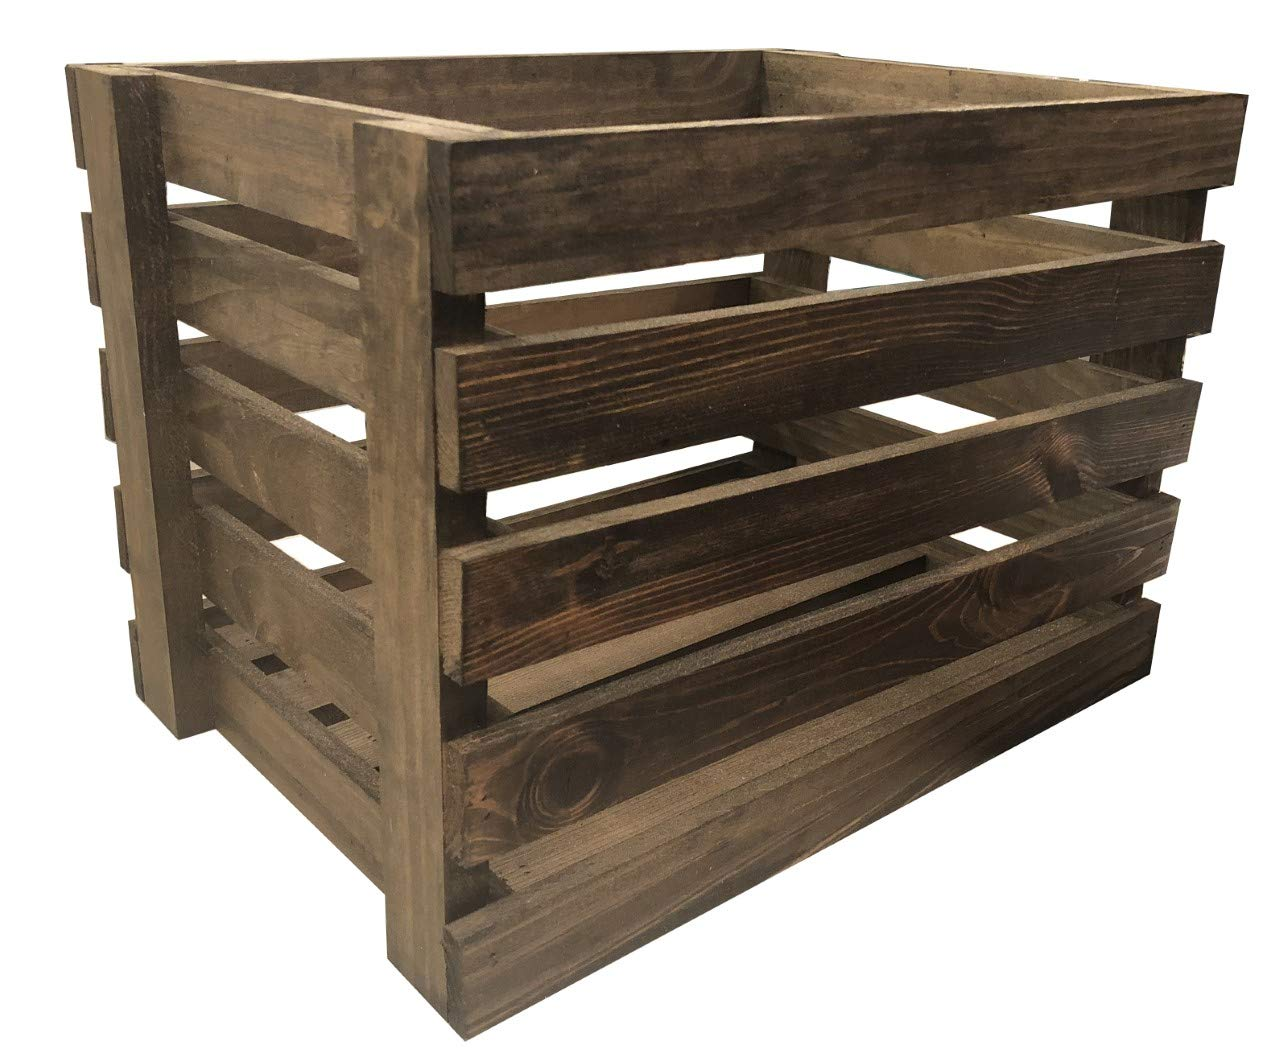 Mowoodwork Large Pine Wood Crates by Mowoodwork